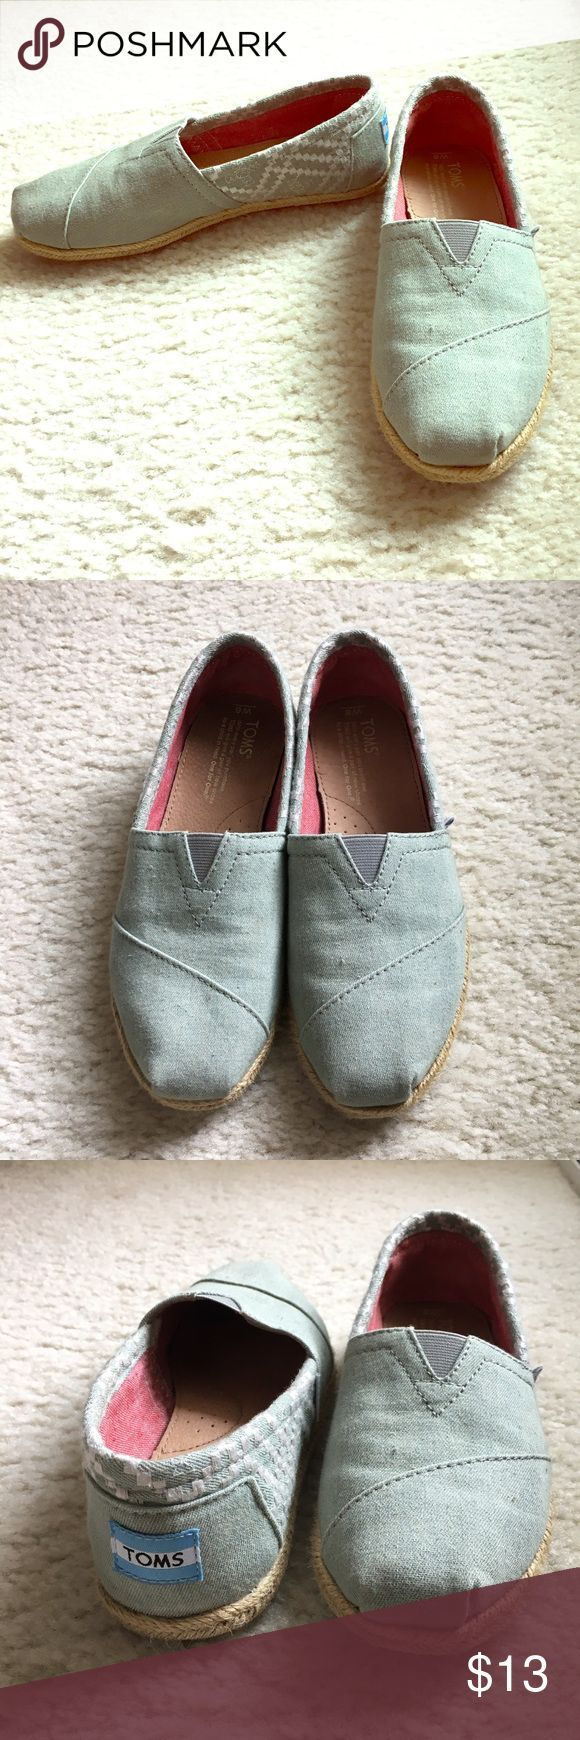 TOMS ESPADRILLES TOMS espadrilles size 6 Women. Worn few times. Very good condition. So comfortable and light. TOMS Shoes Espadrilles